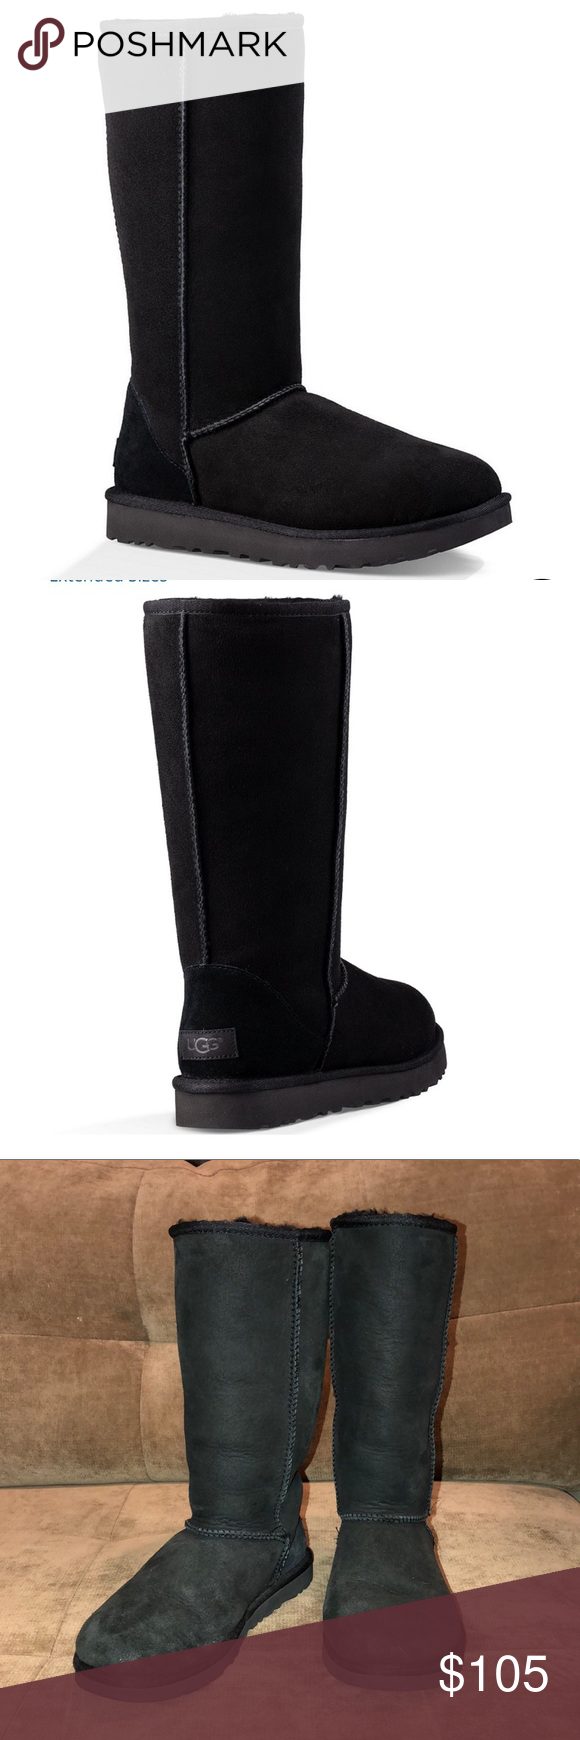 c8f06c213fad Black Classic Knee High UGG Boots From UGG®